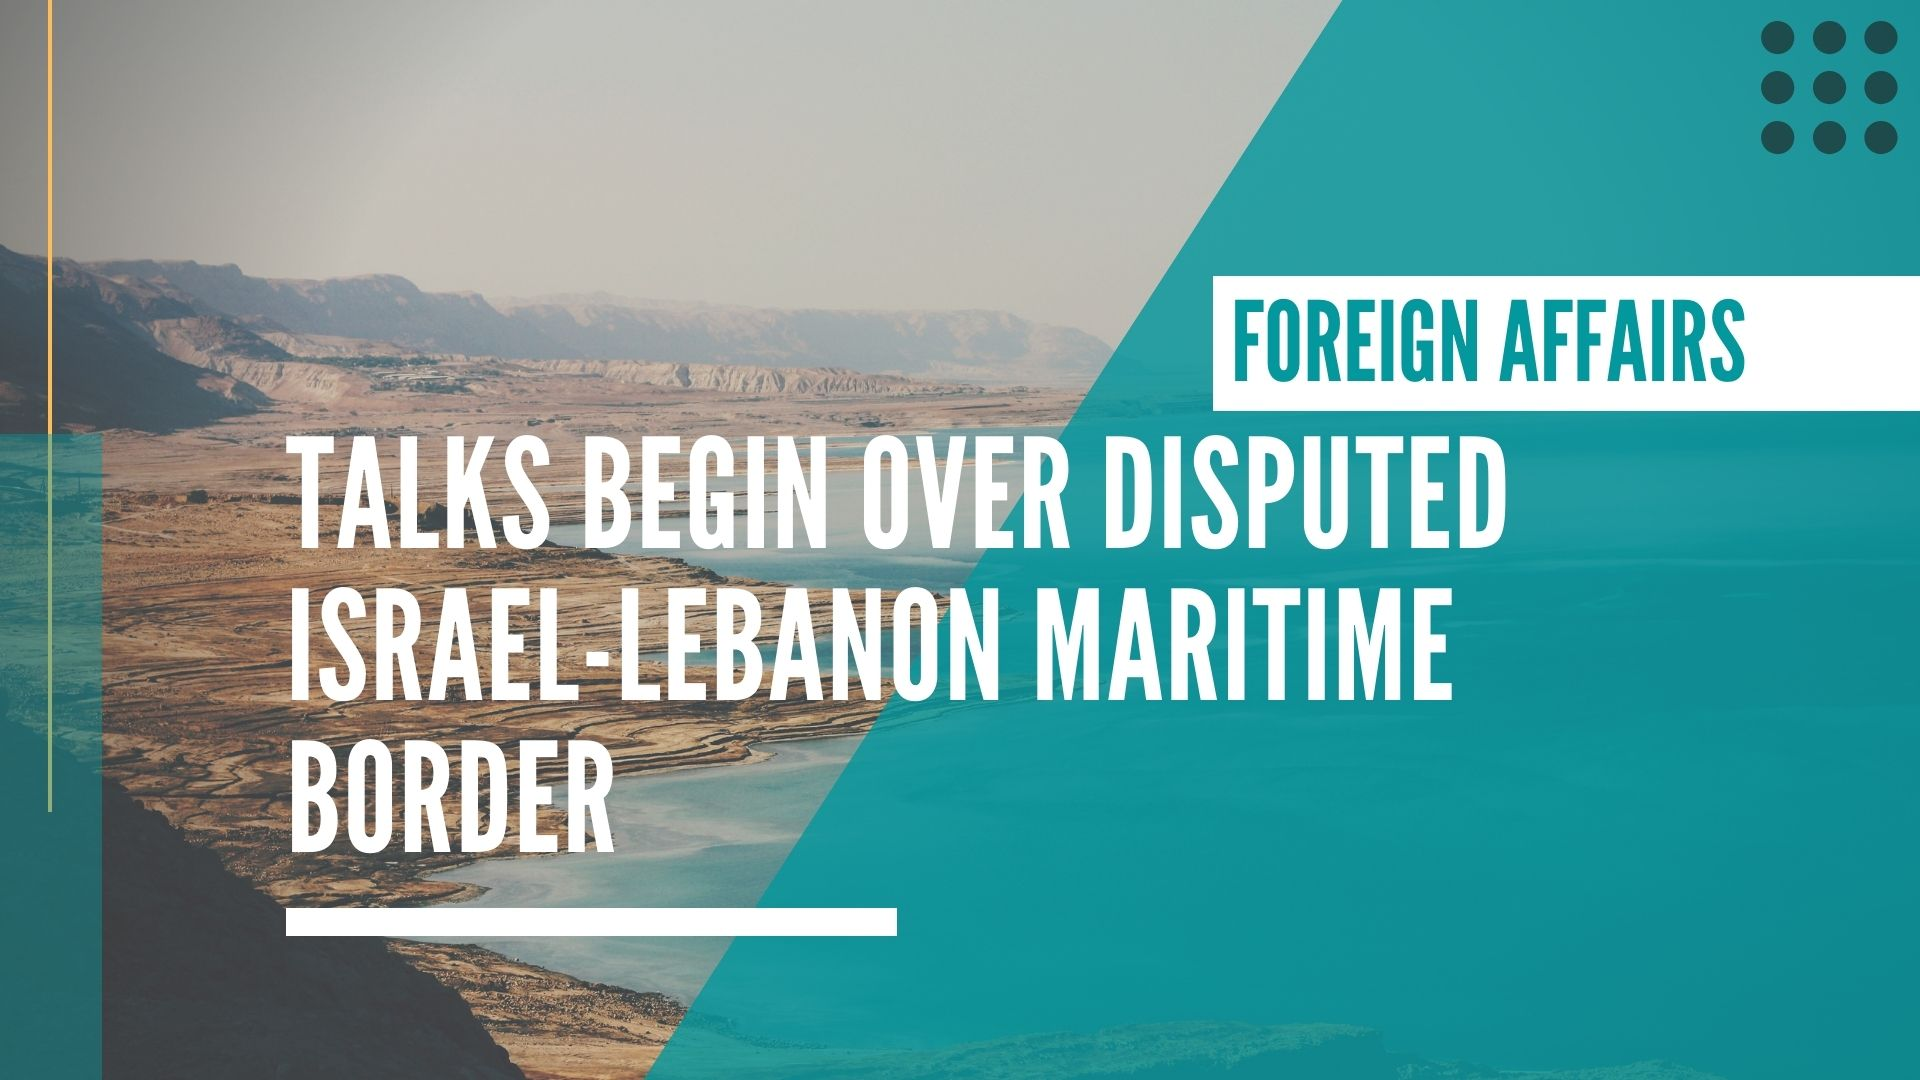 Talks begin over disputed Israel-Lebanon maritime border